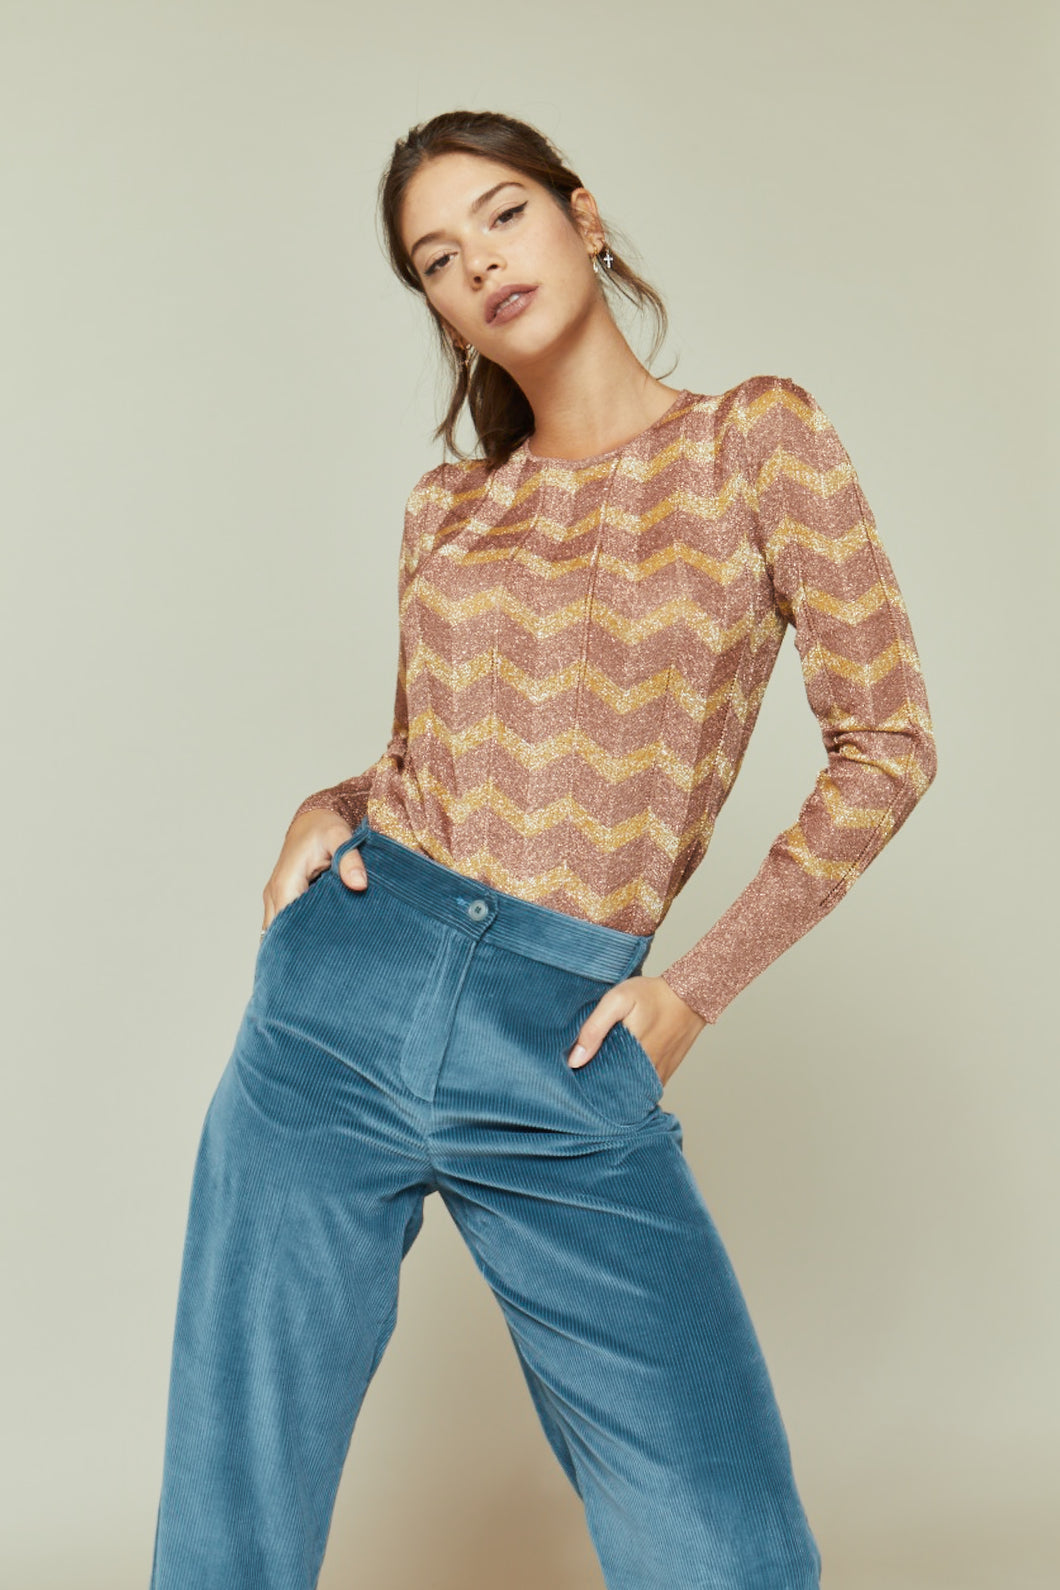 Lucille in Copper and Gold Knit